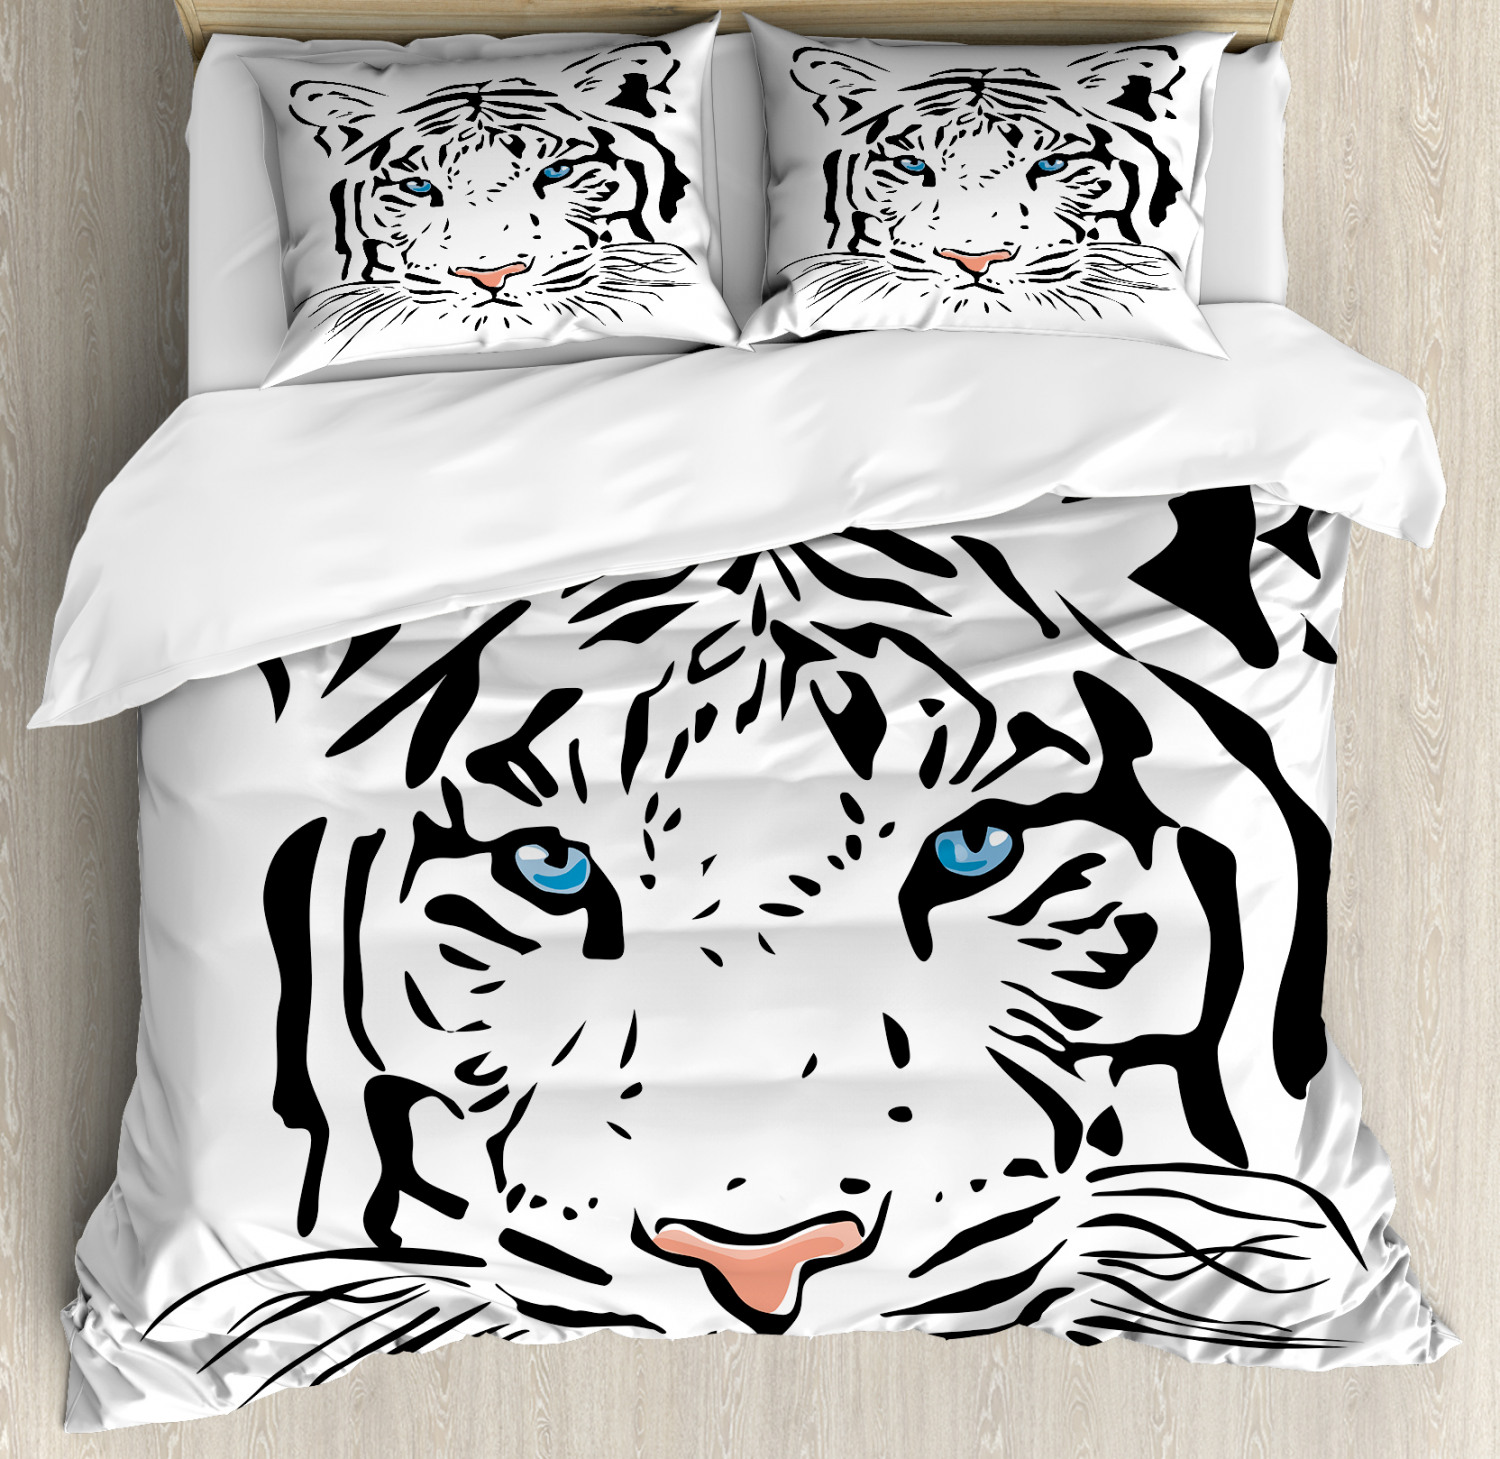 Tattoo Duvet Cover Set with Pillow Shams Tiger Ocean bluee Eyes Print